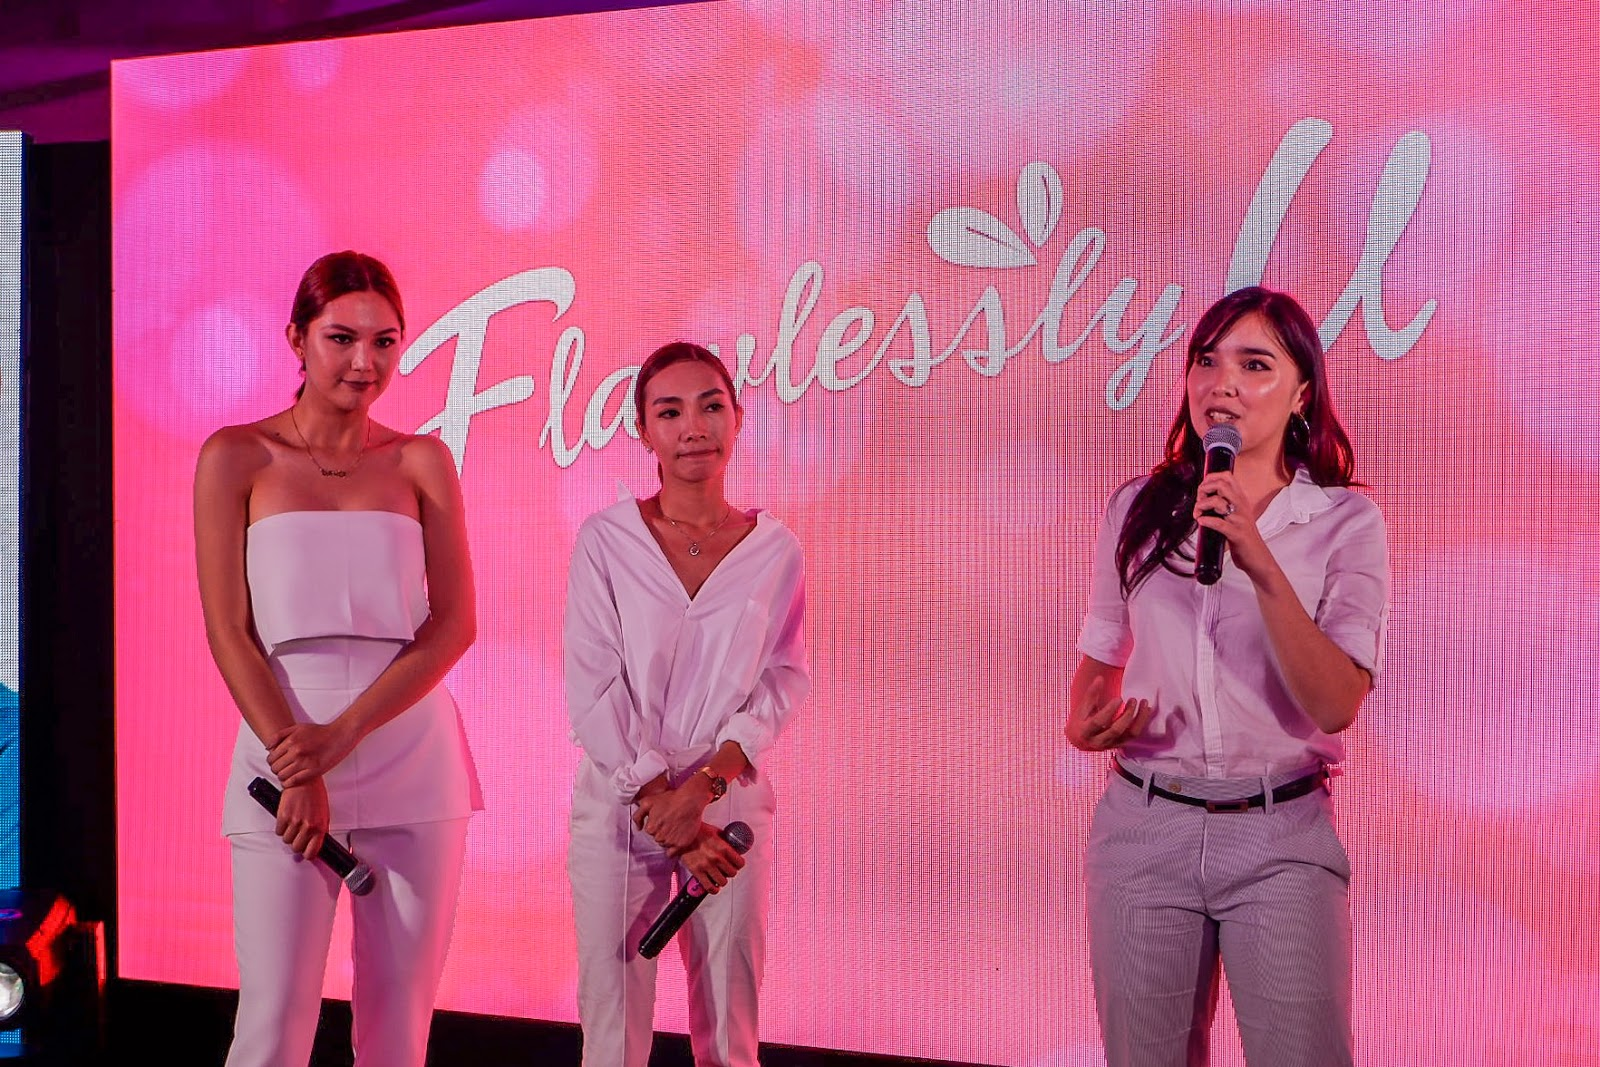 Flawlessly U Celebrates the Beauty of Everyday Women in New Campaign #NotAPrincessStillFlawless